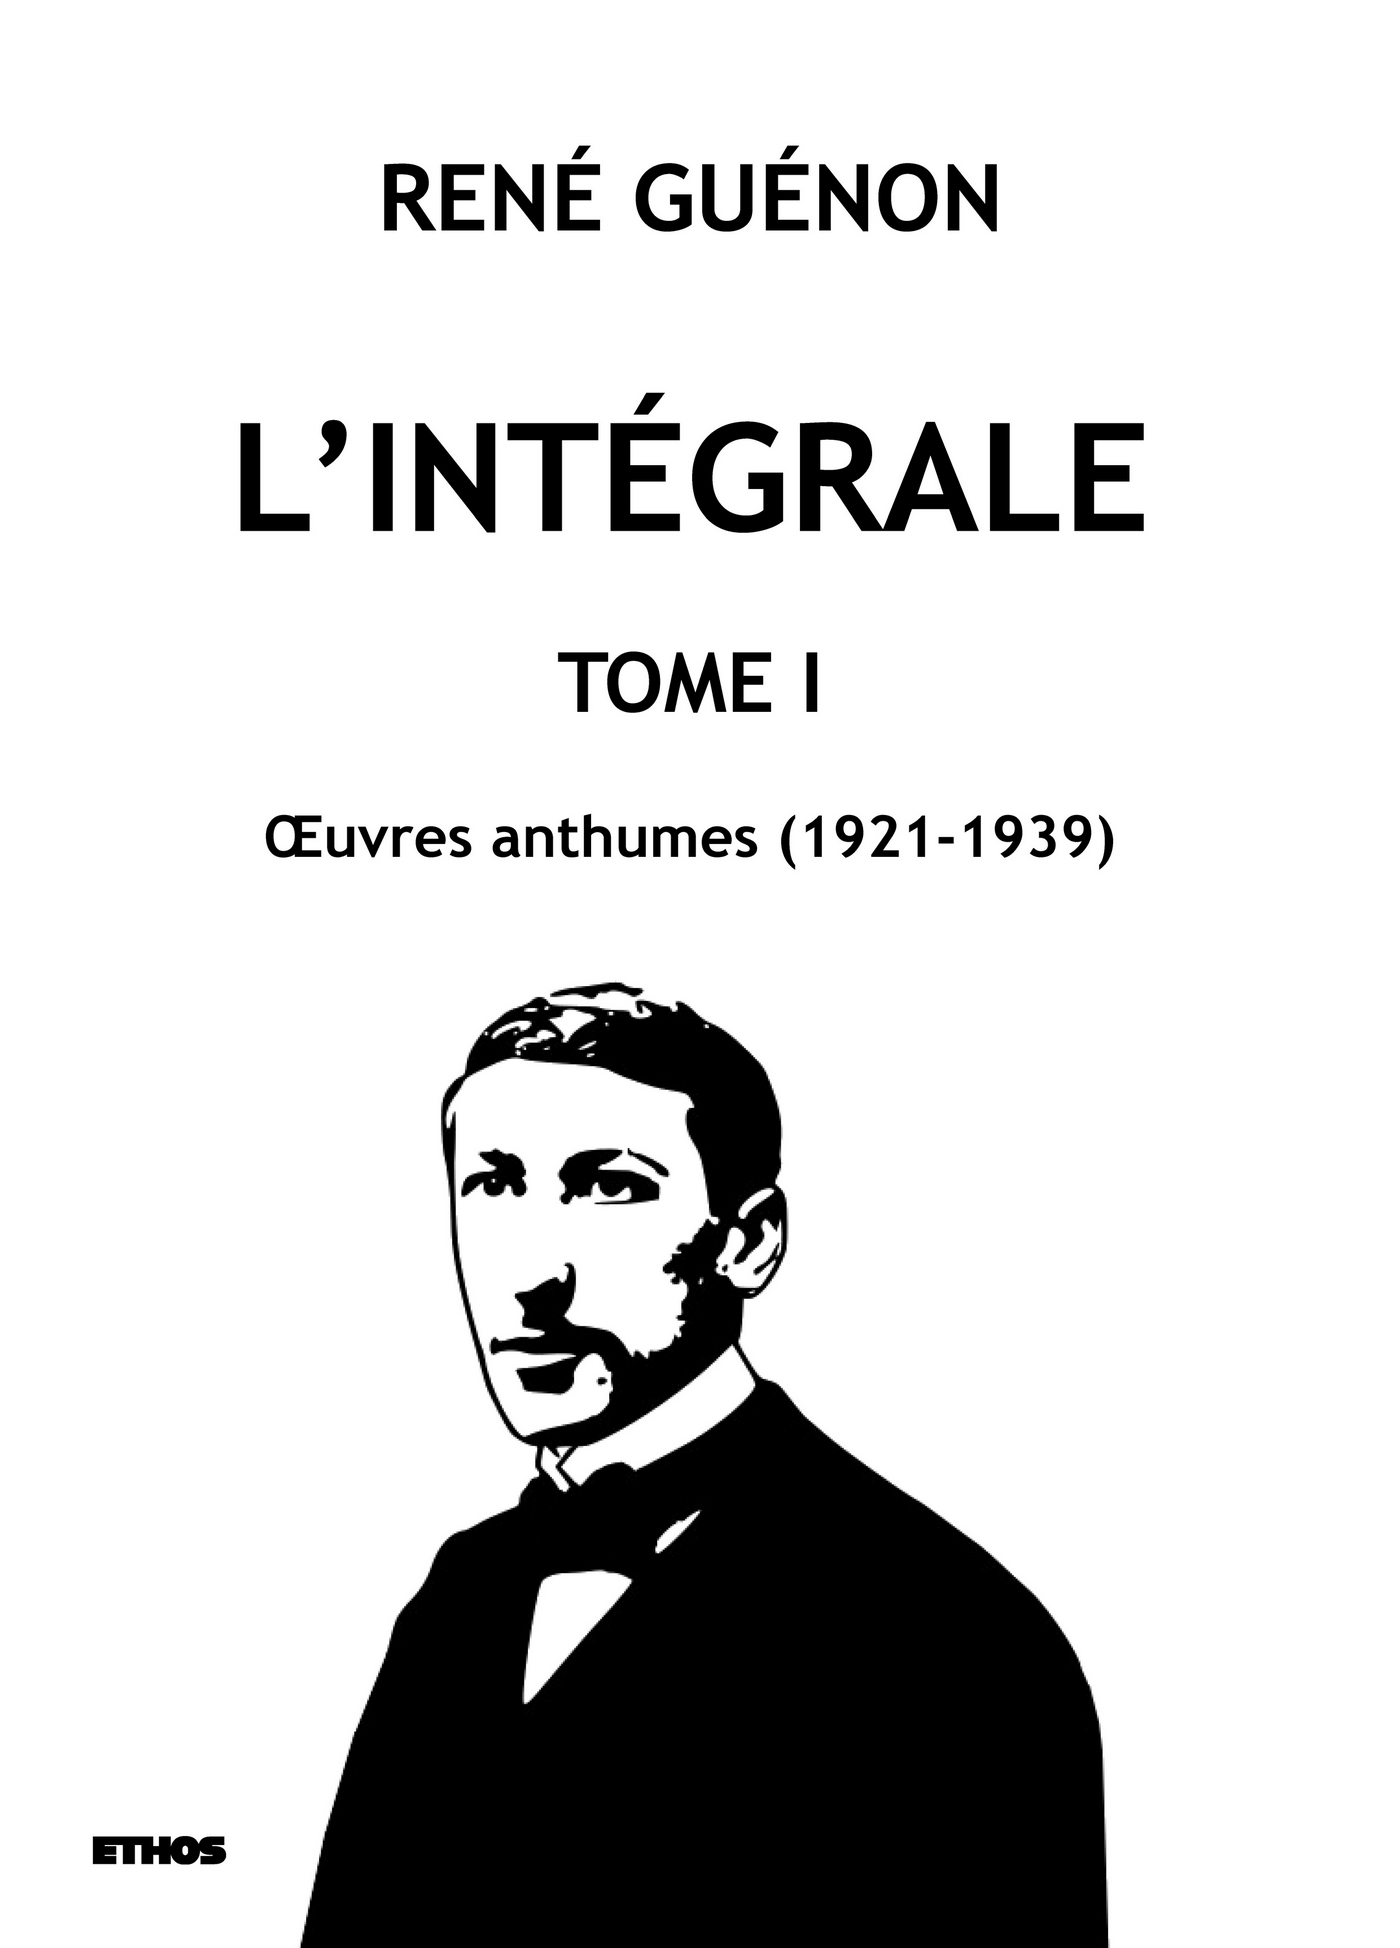 L'INTEGRALE TOME 1 - OEUVRES ANTHUMES (1921-1939)